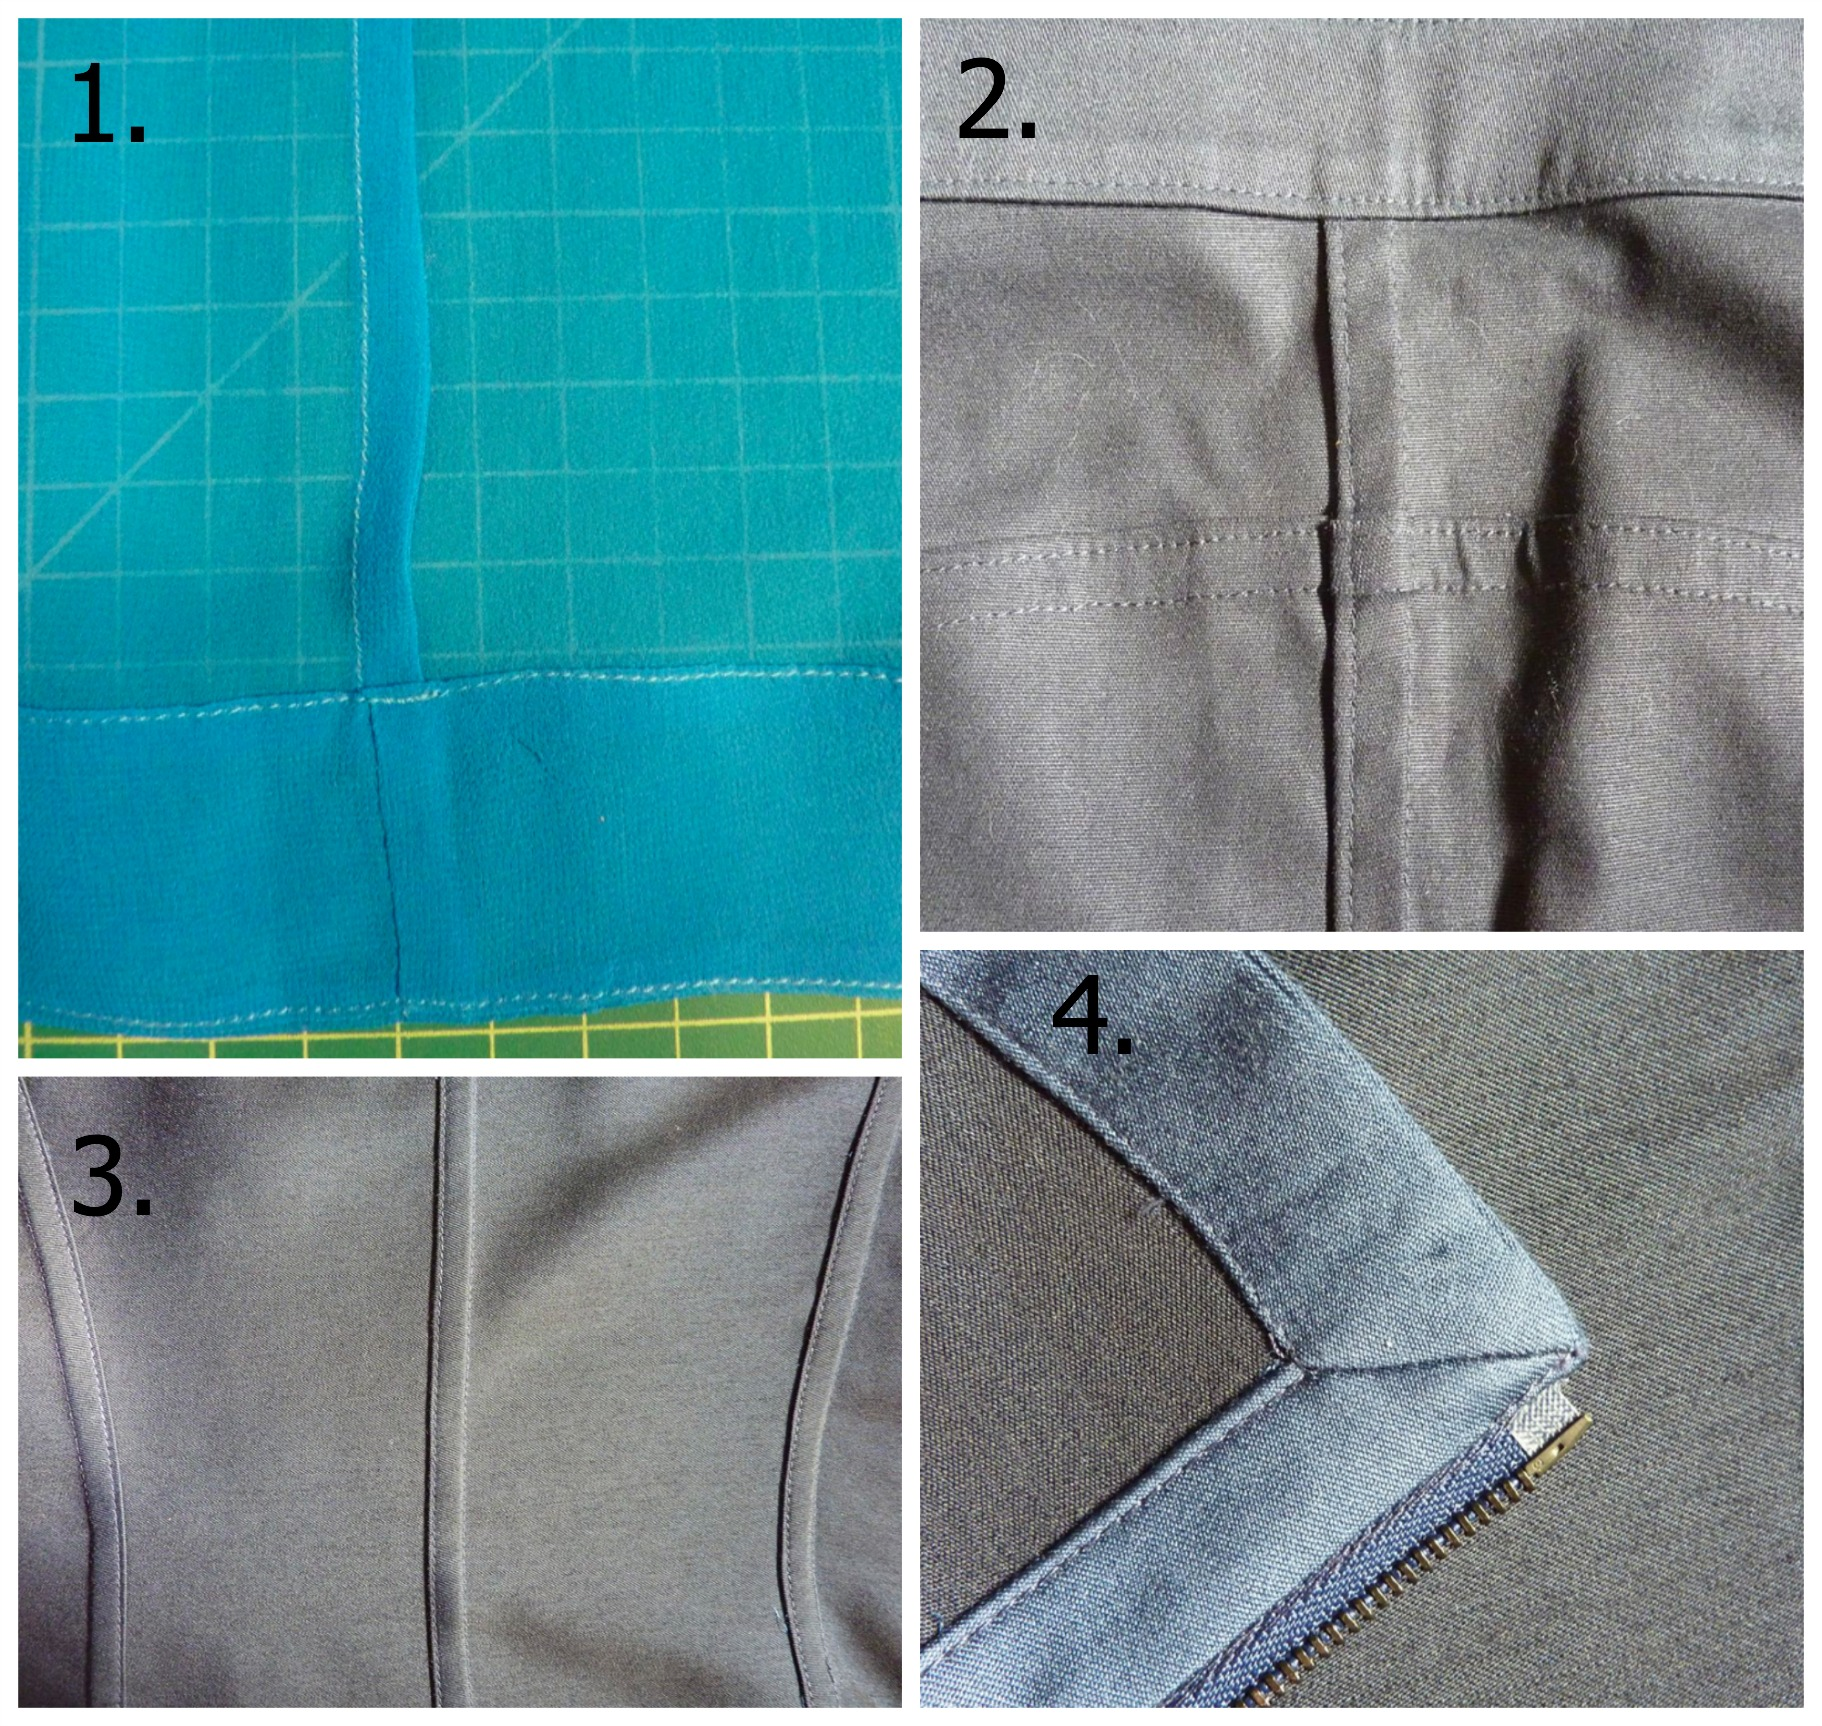 1. This is a French Seam. Often used with silks and light weight fabrics, it finishes both the inside and outside edge, preventing the fabric from fraying. 2. A Mock Felled Seam. Often used in denim, this technique strengthens the garment by interlocking heavier-weight fabric. 3. This is the inside back view of the black drape jacket in the second outfit above. Tailored to perfection! Another Mock Felled Seam. 4. The Mitered Corner. A perfect 45 degree angle finishes the corner cleanly with less bulk.